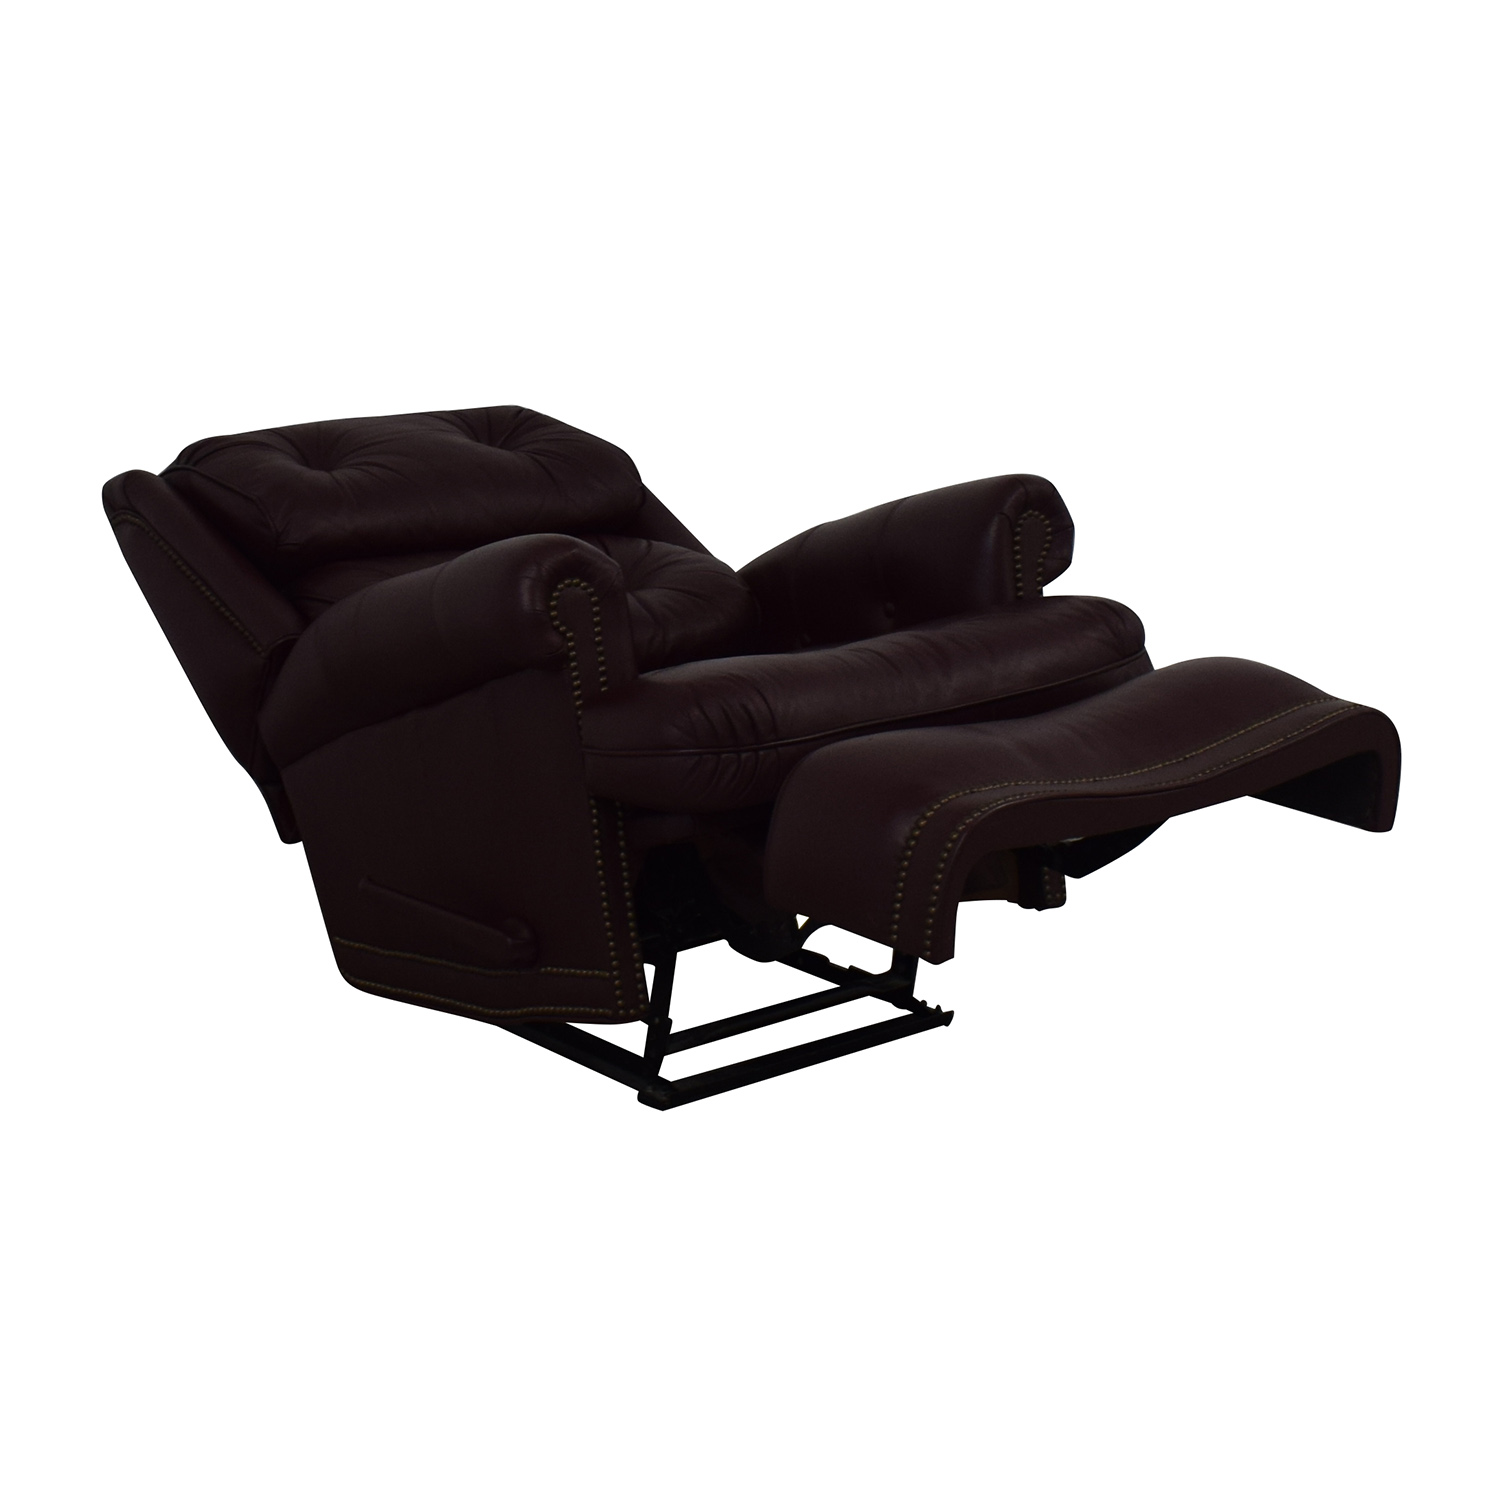 buy Distinctions Furniture Leather Burgundy Recliner Distinctions Furniture Chairs